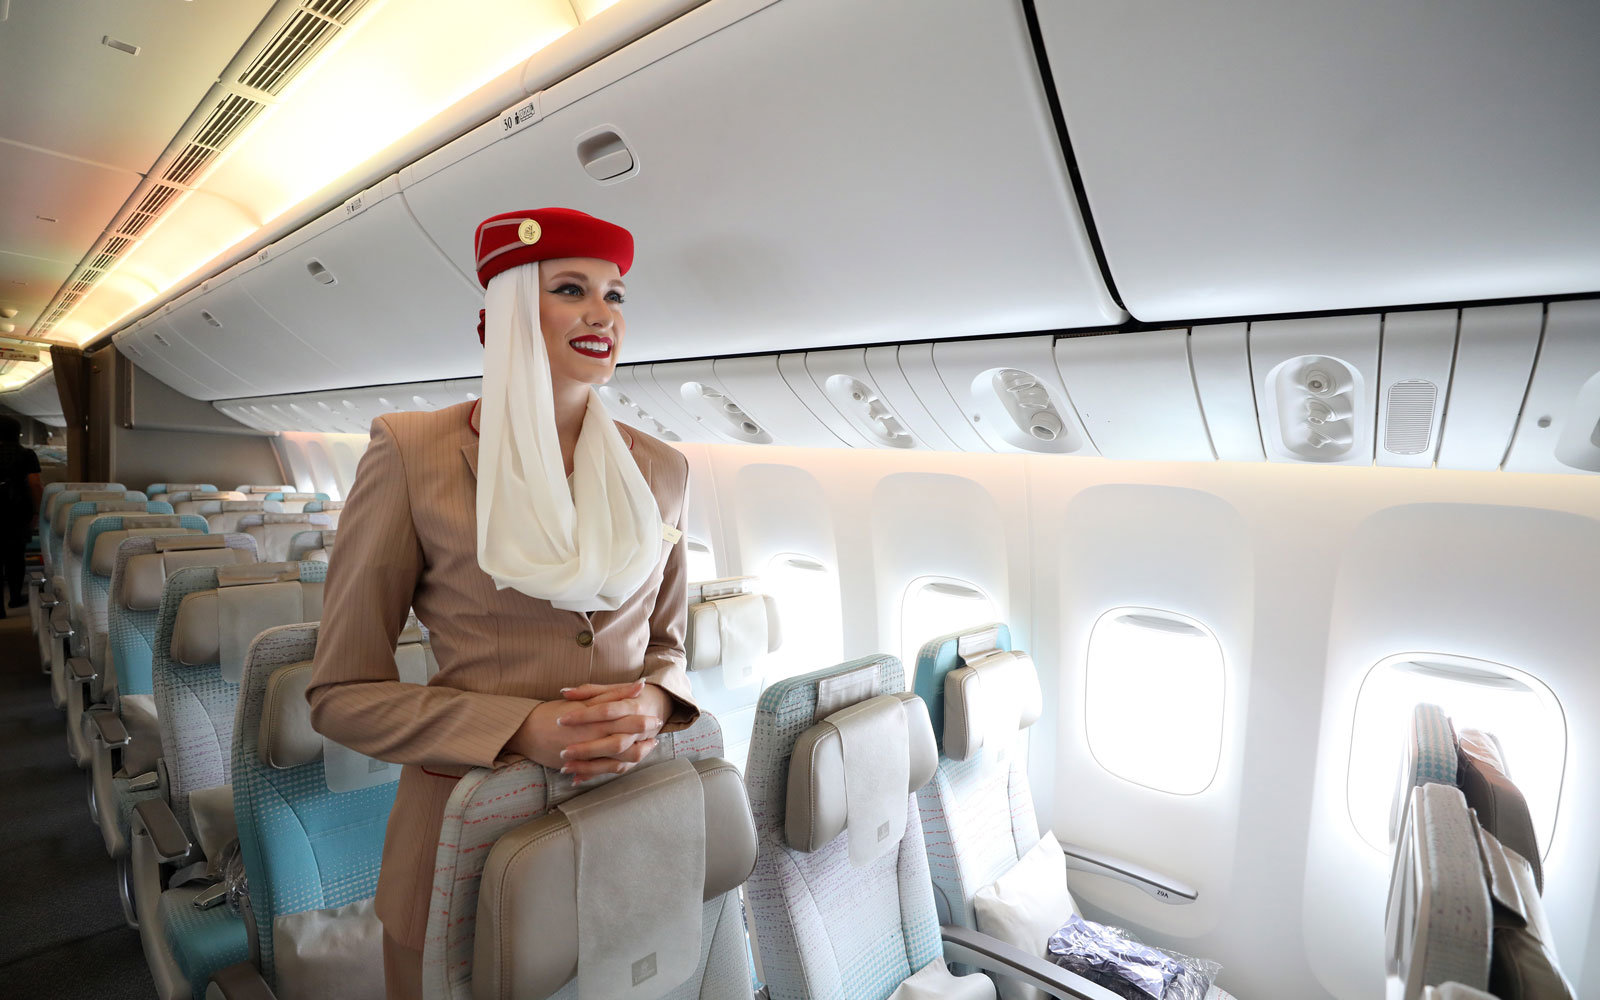 Emirates is currently hiring flight attendants.